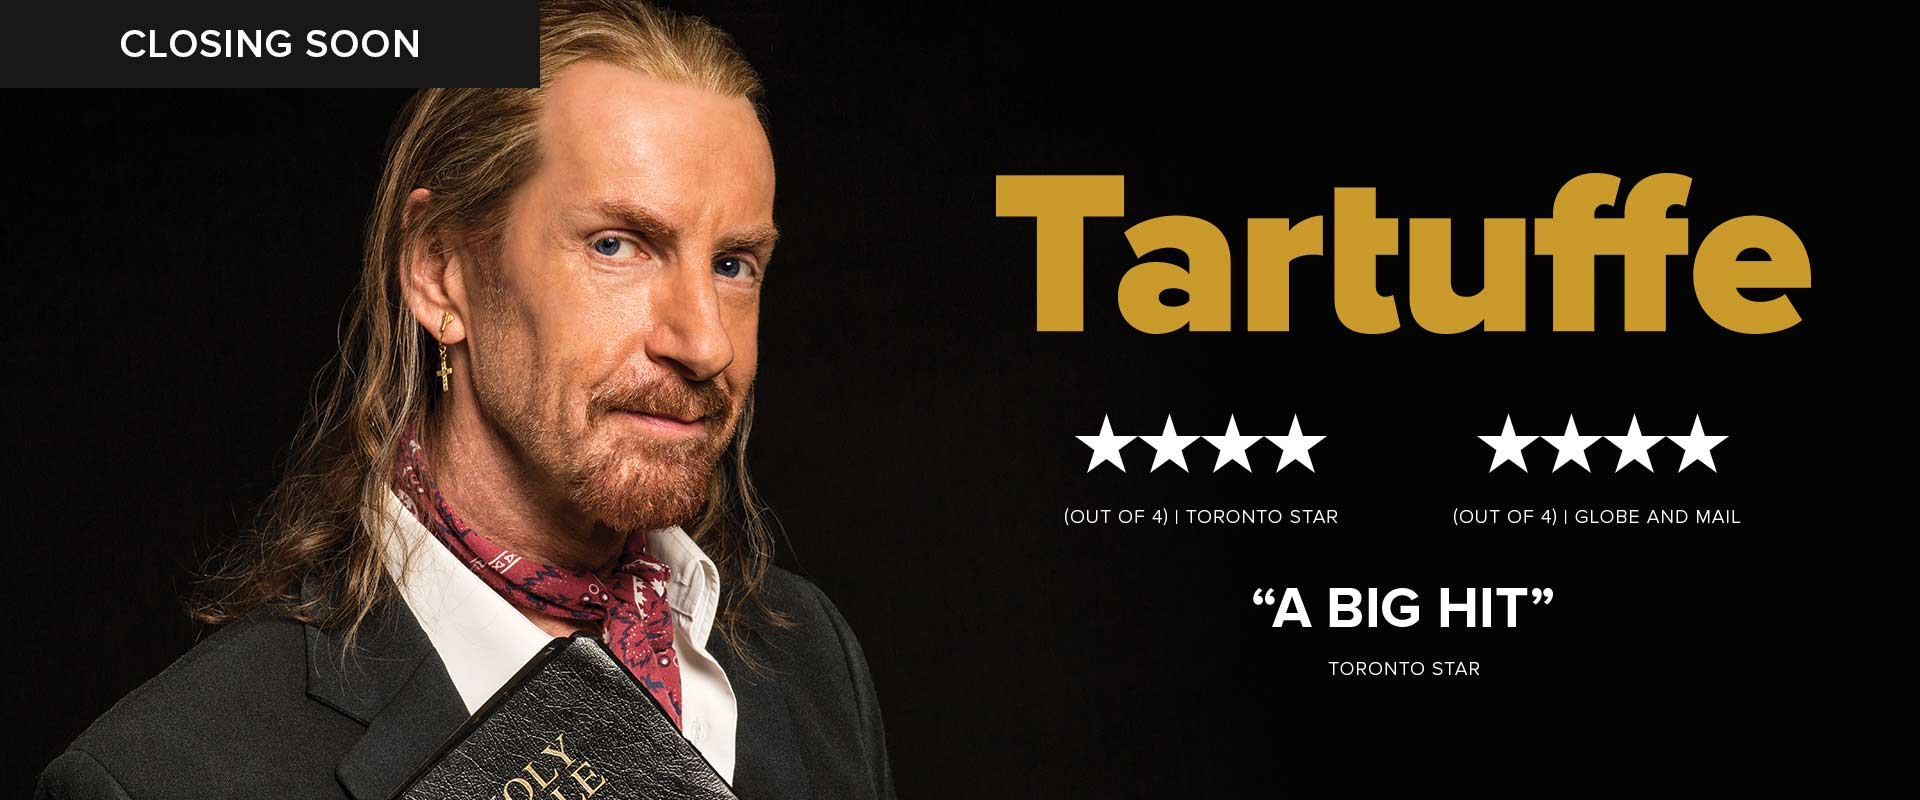 Publicity image from Tartuffe featuring Tom Rooney